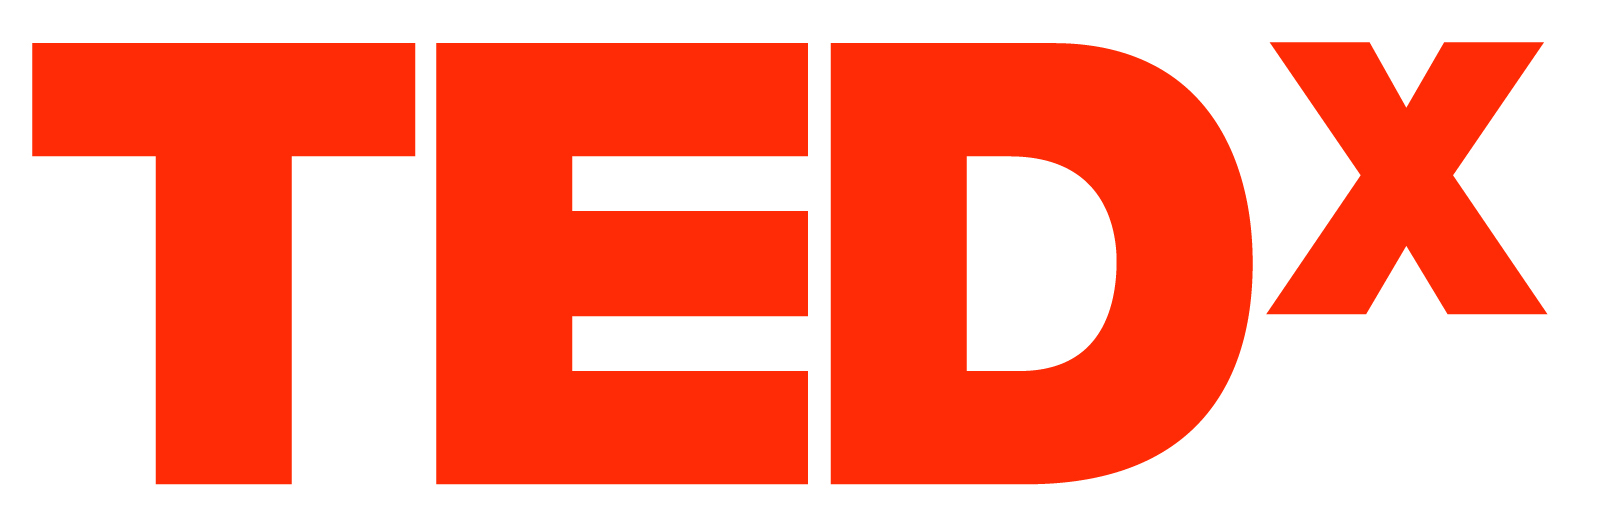 TEDx Islamabad, Pakistani news, Education, Entrepreneurship